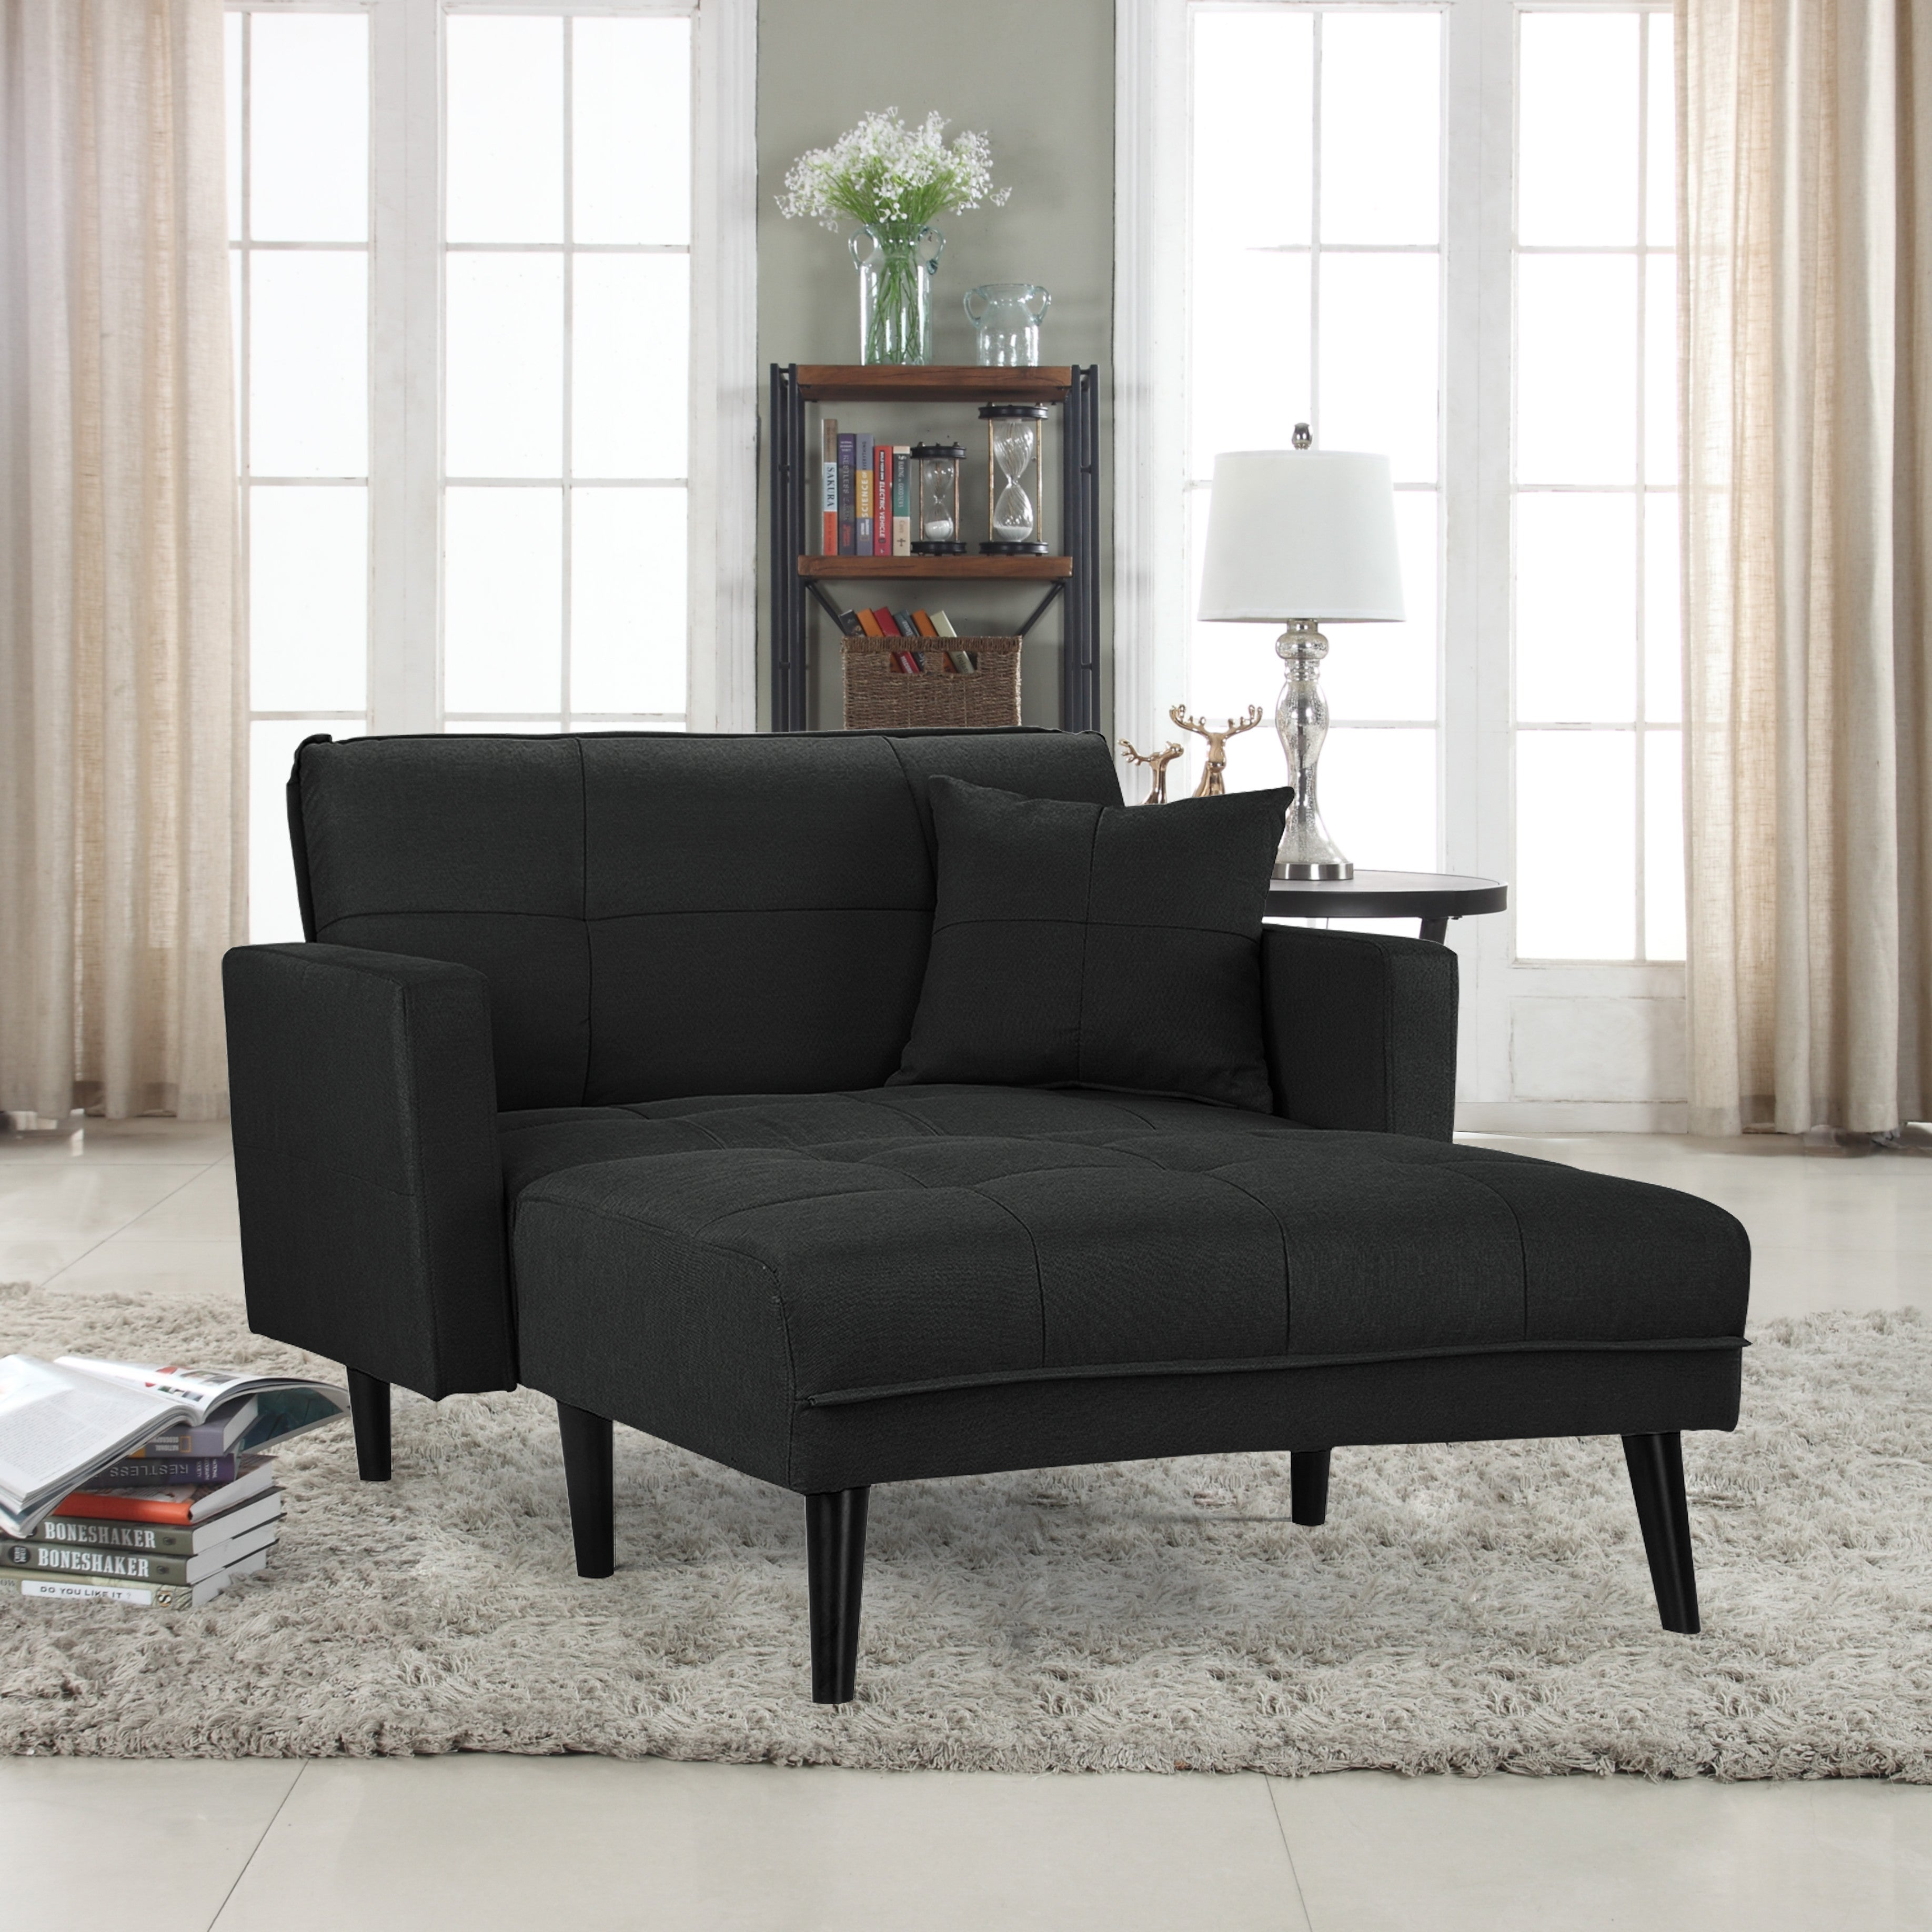 Madrid Contemporary Linen Sleeper Chaise Lounge